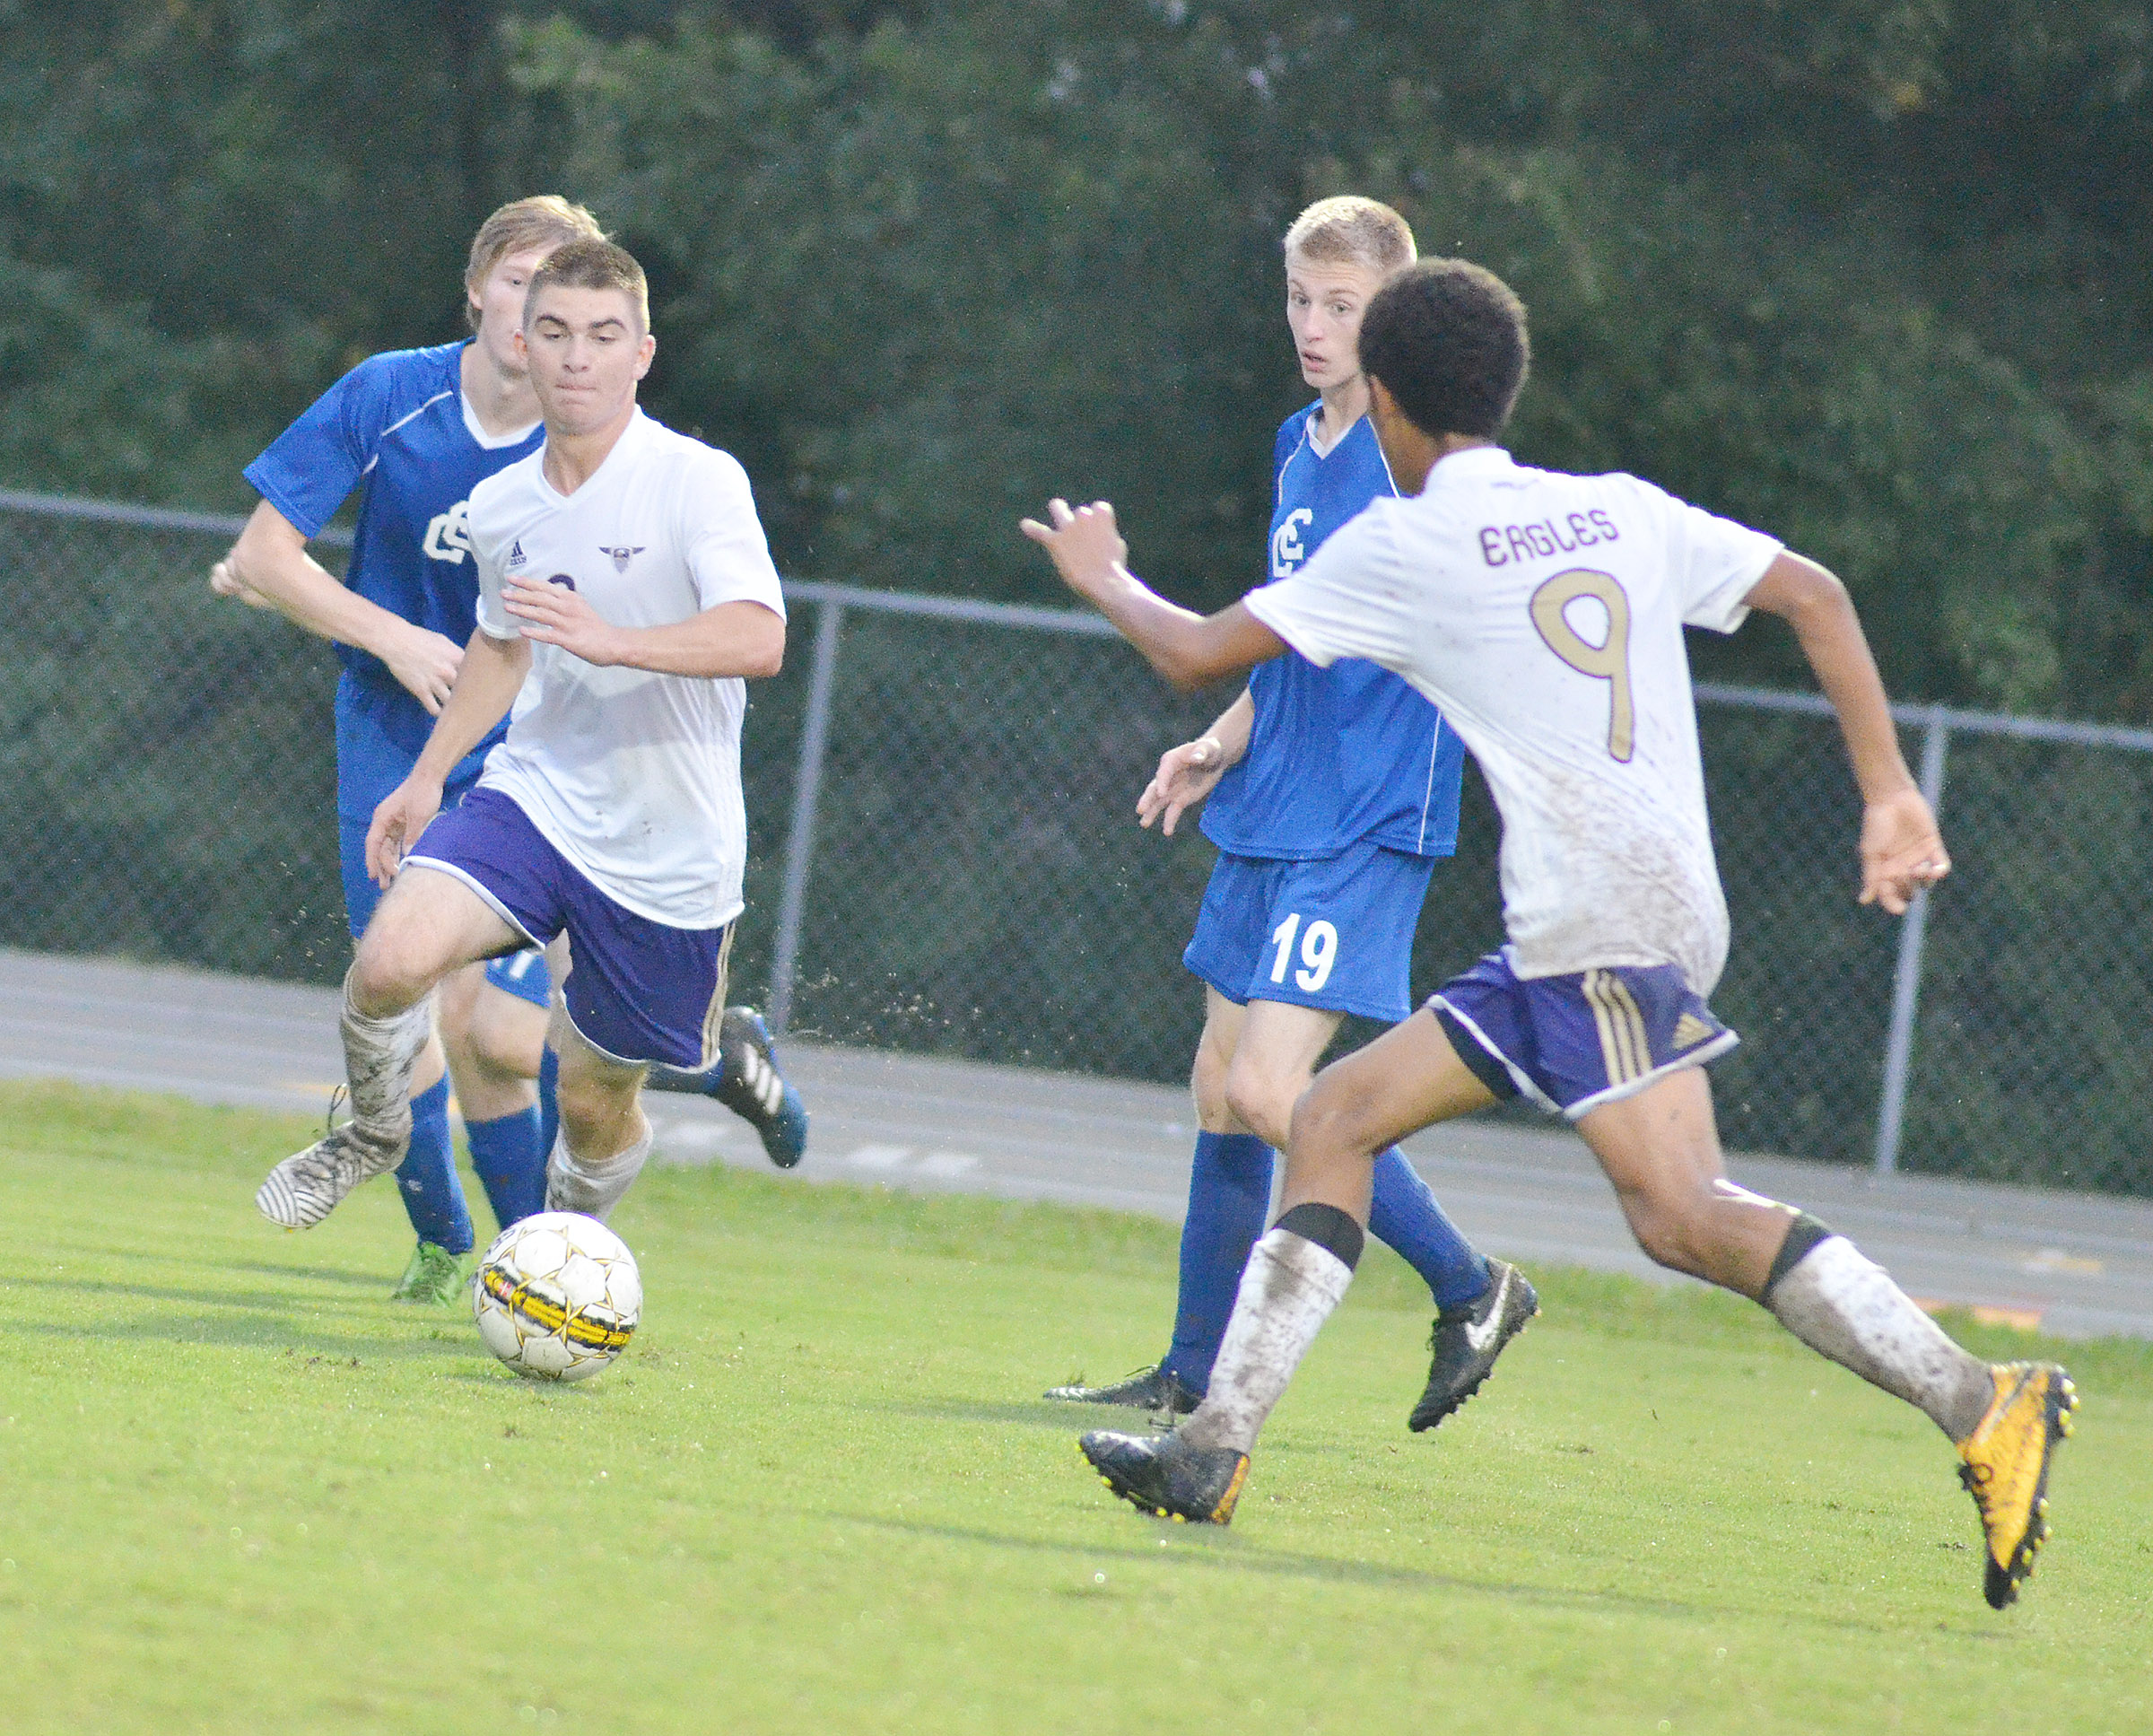 CHS senior Cass Kidwell, at left, and sophomore David Silva run for the ball.